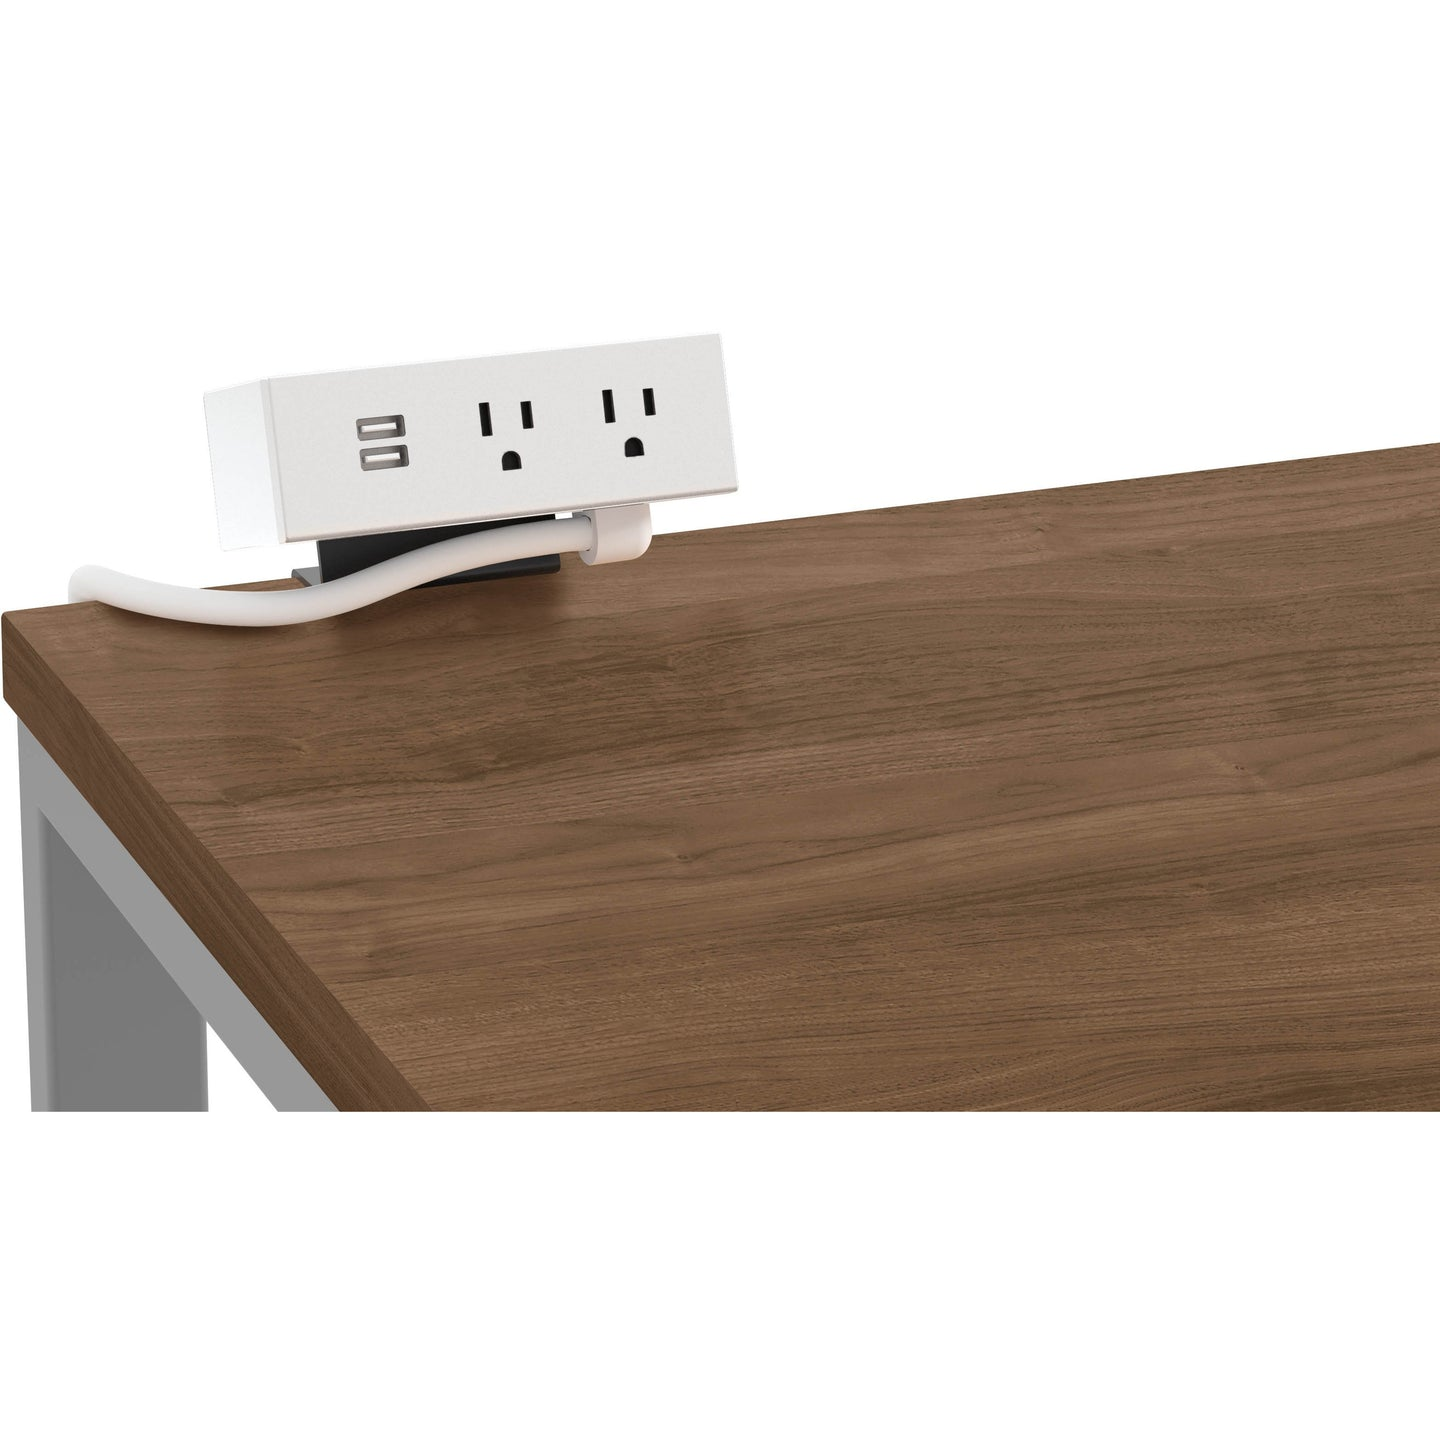 Worksurface-Mounted Power Module with 2 Receptacles and 2 USBs